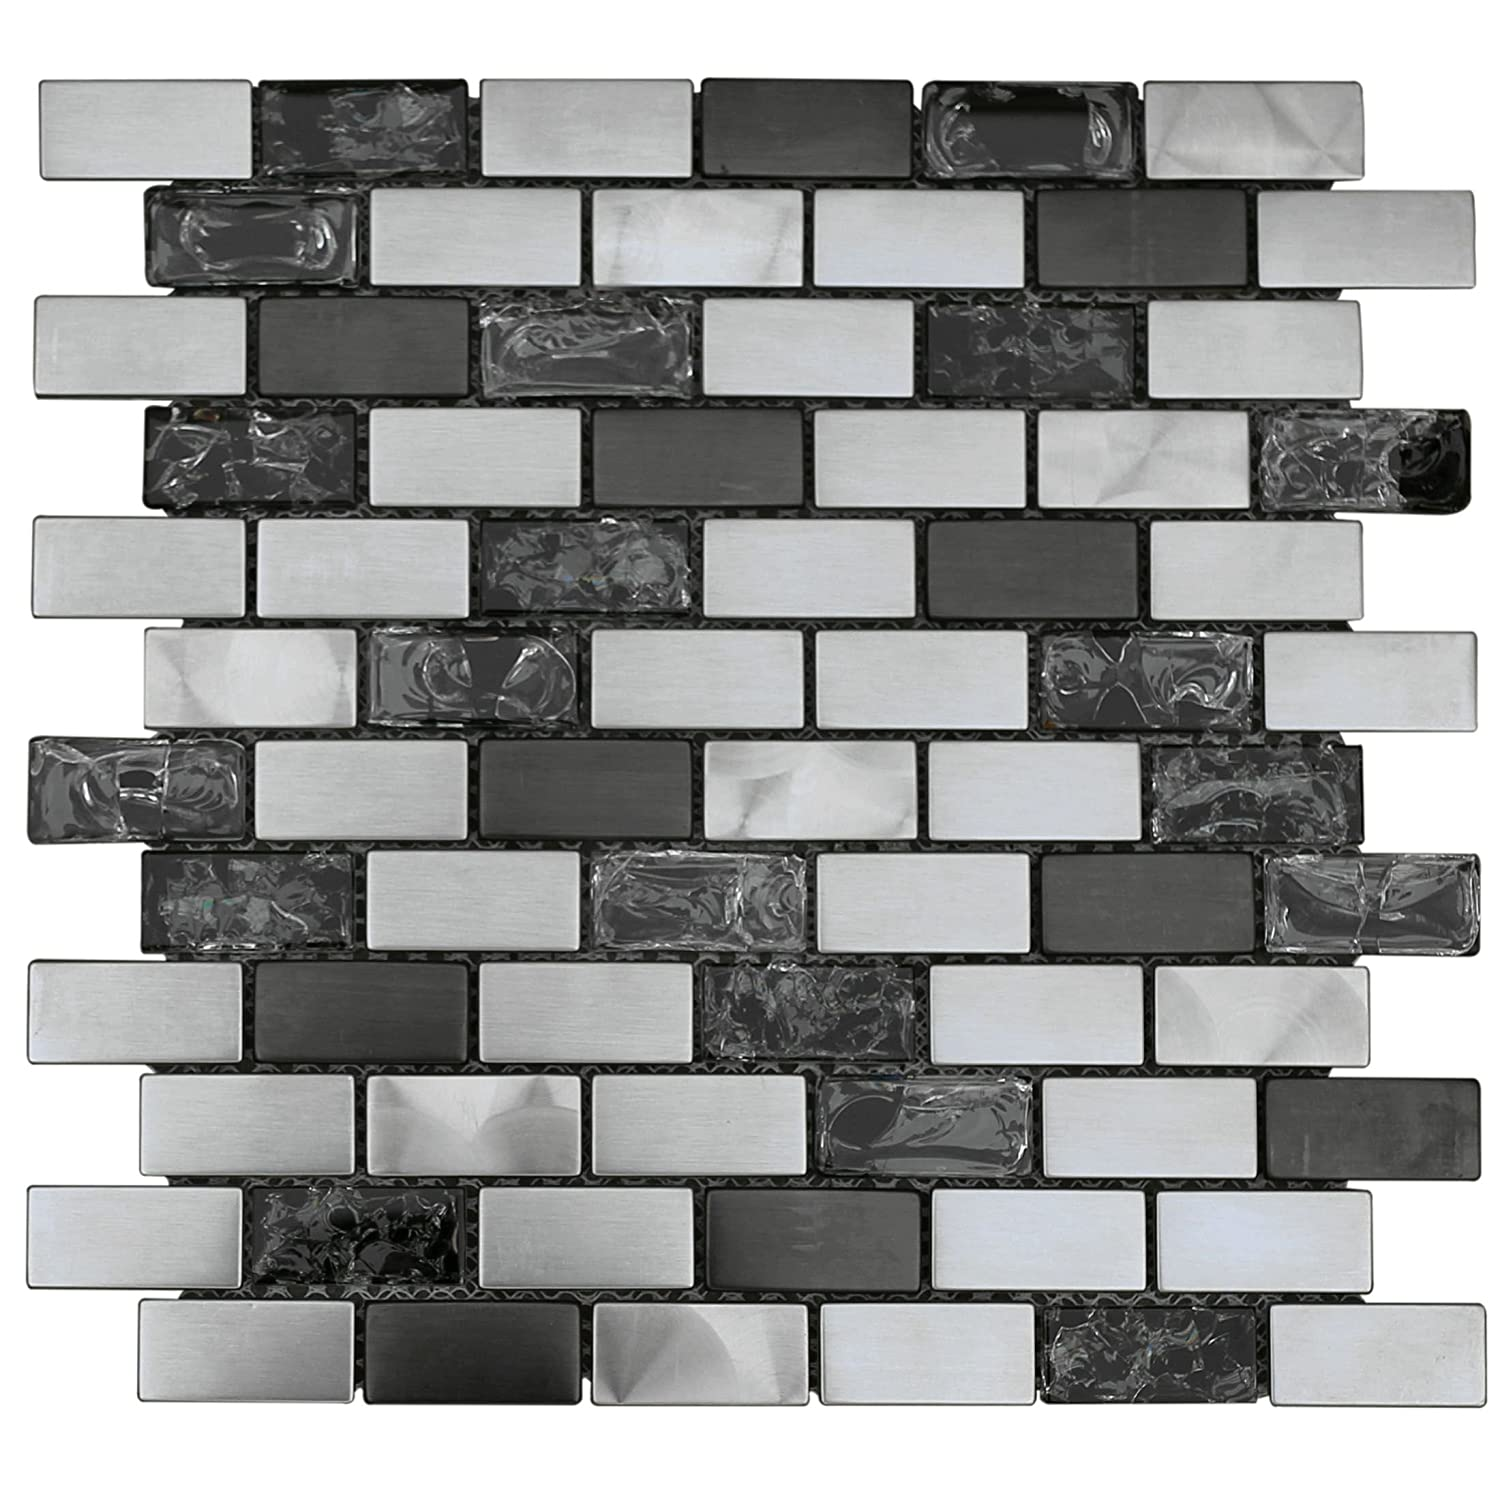 Stainless Steel Metal Mix Crackle Glass Mosaic Tile for Kitchen